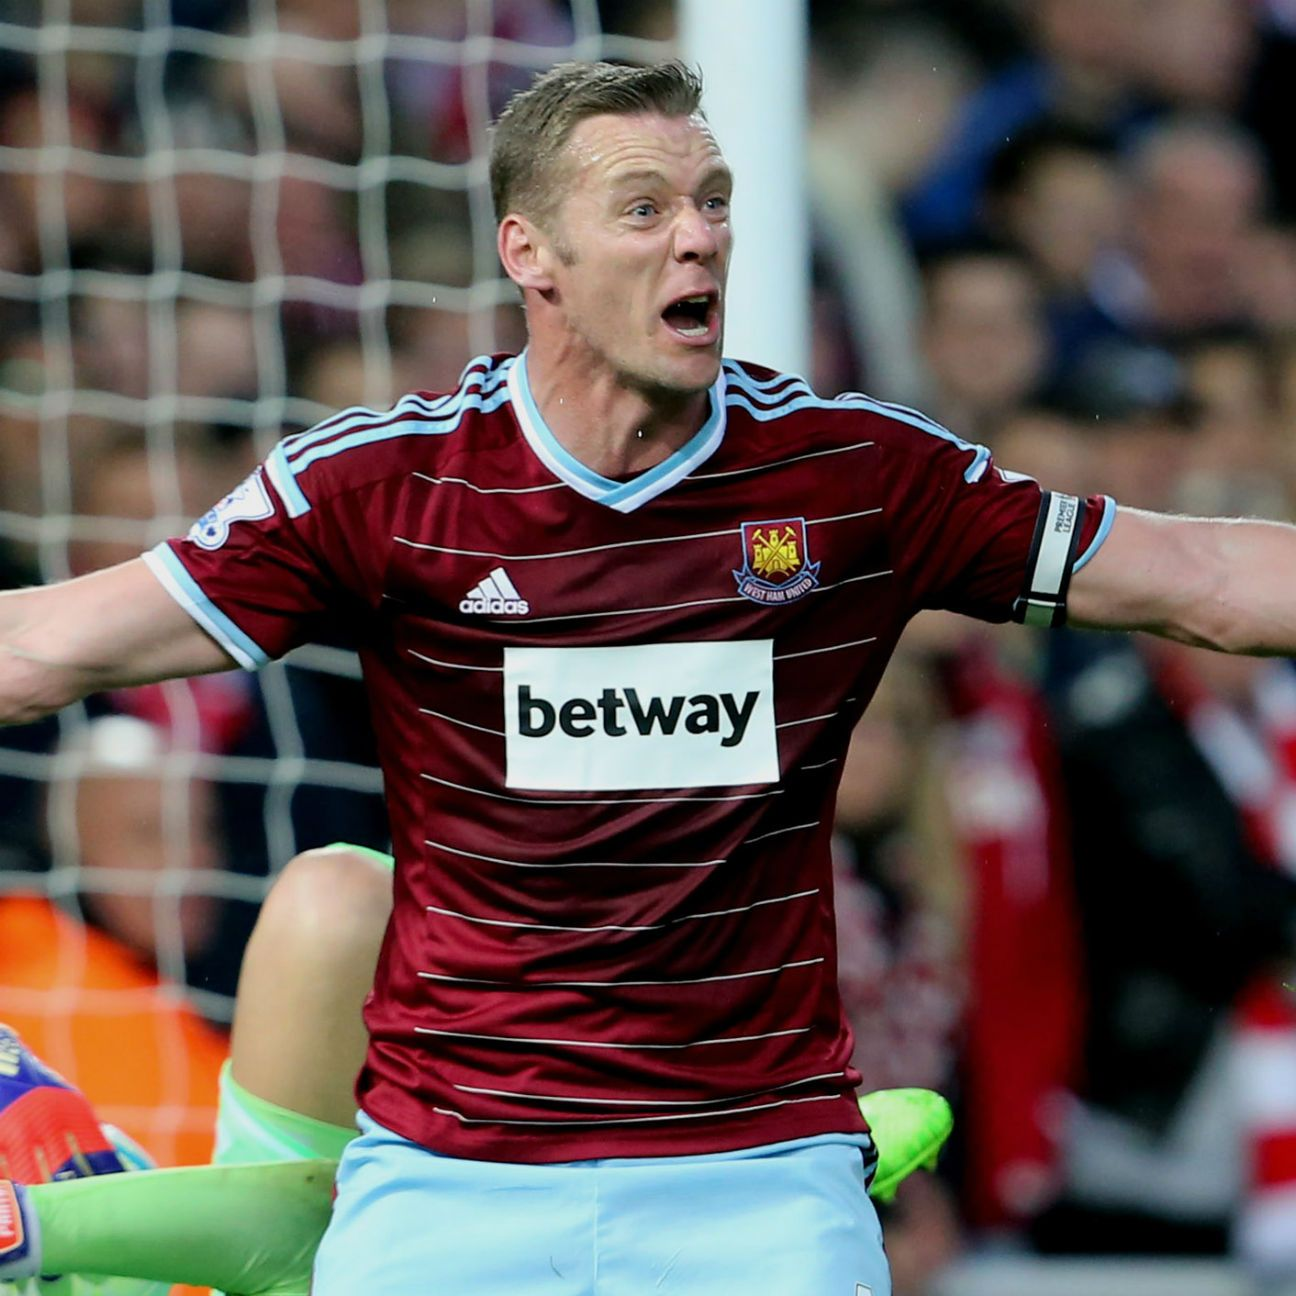 After struggling in 2014-15, many wonder if Kevin Nolan's West Ham tenure has come to a close.